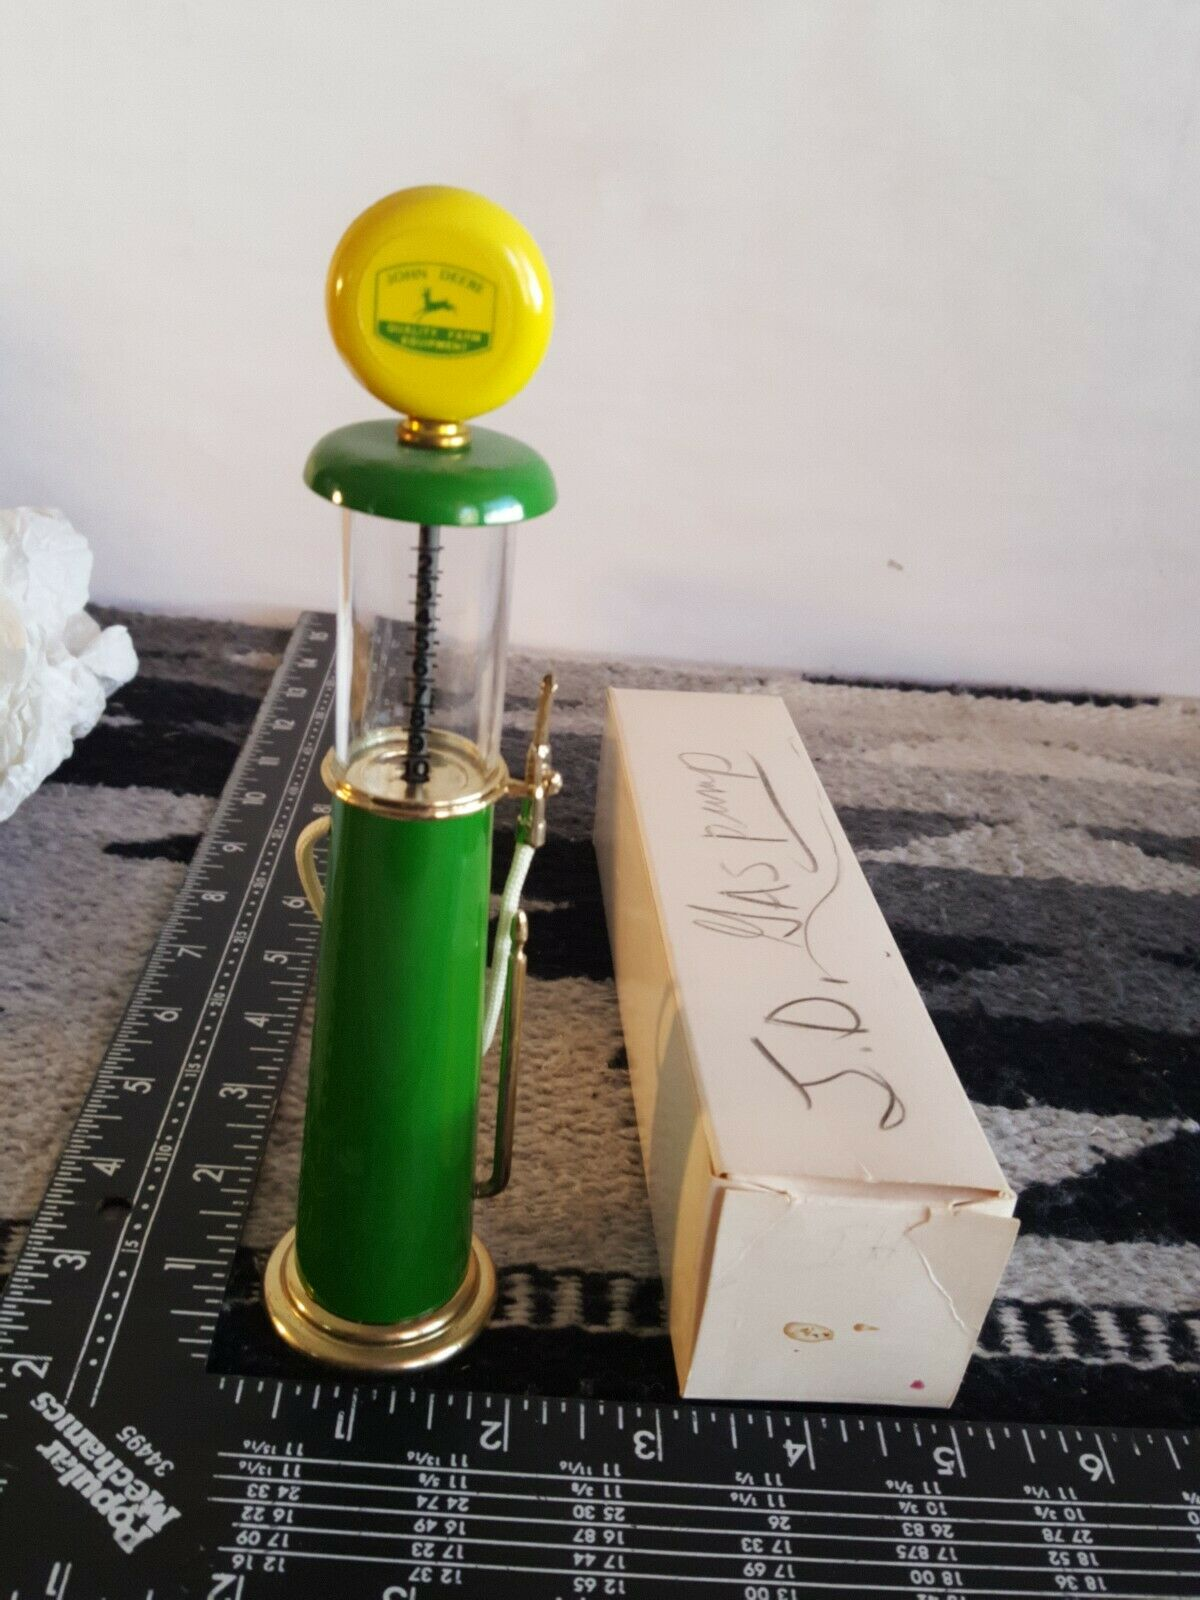 John Deere Gas Pump 1 12 diecast gas pump replica collectible by ROY'S MFG